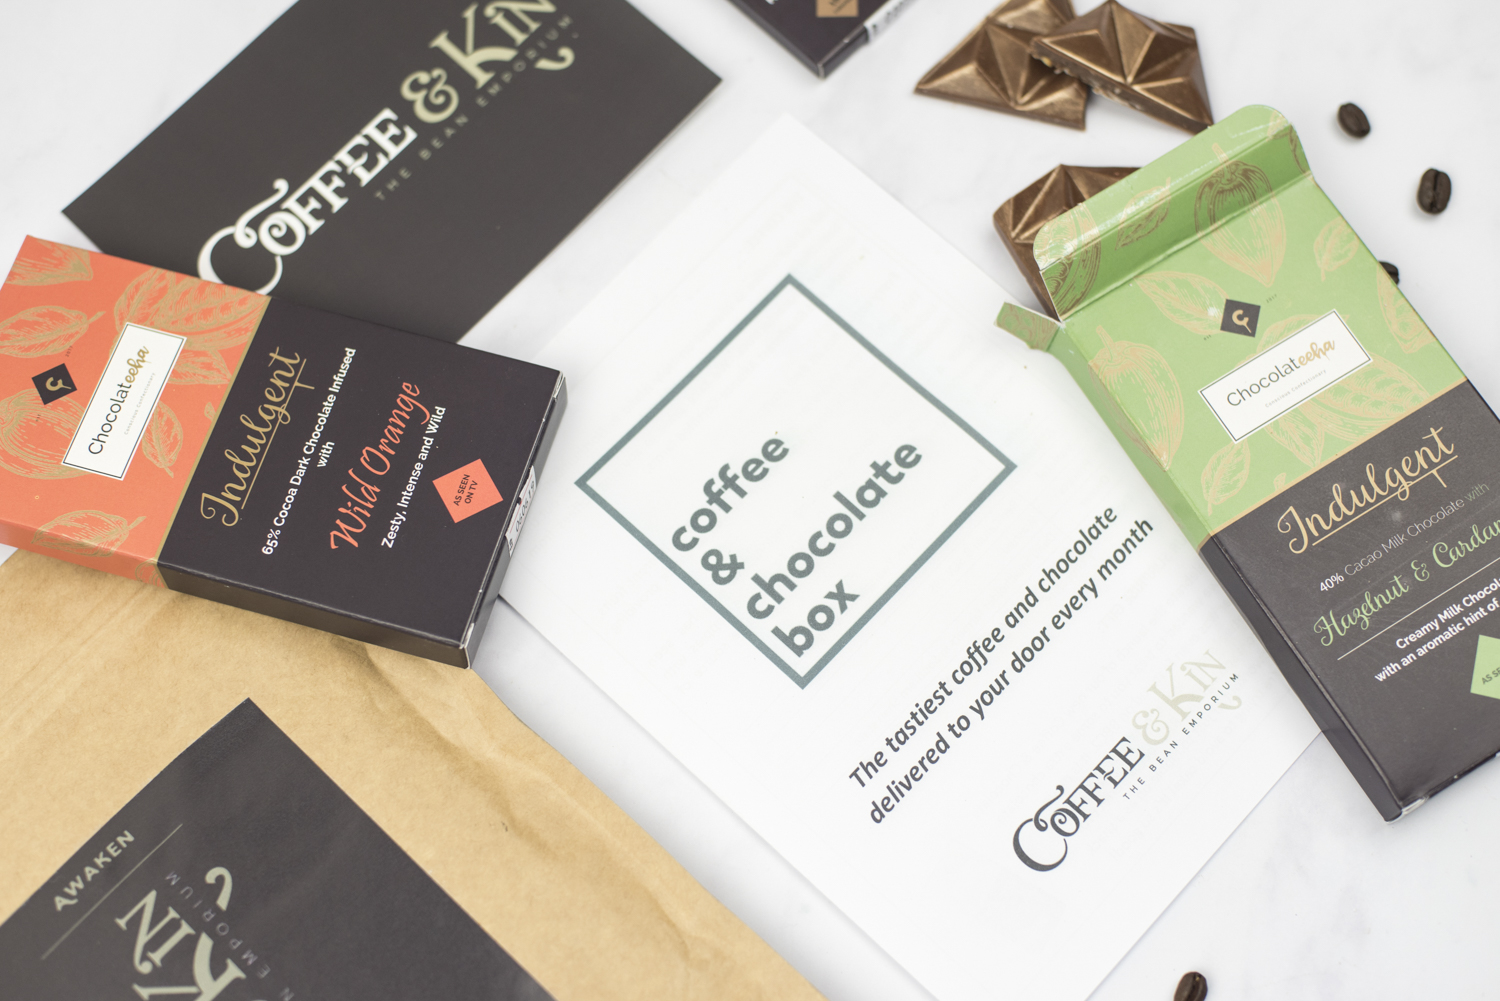 Coffee-Chocolate-Subscription-Box.jpg